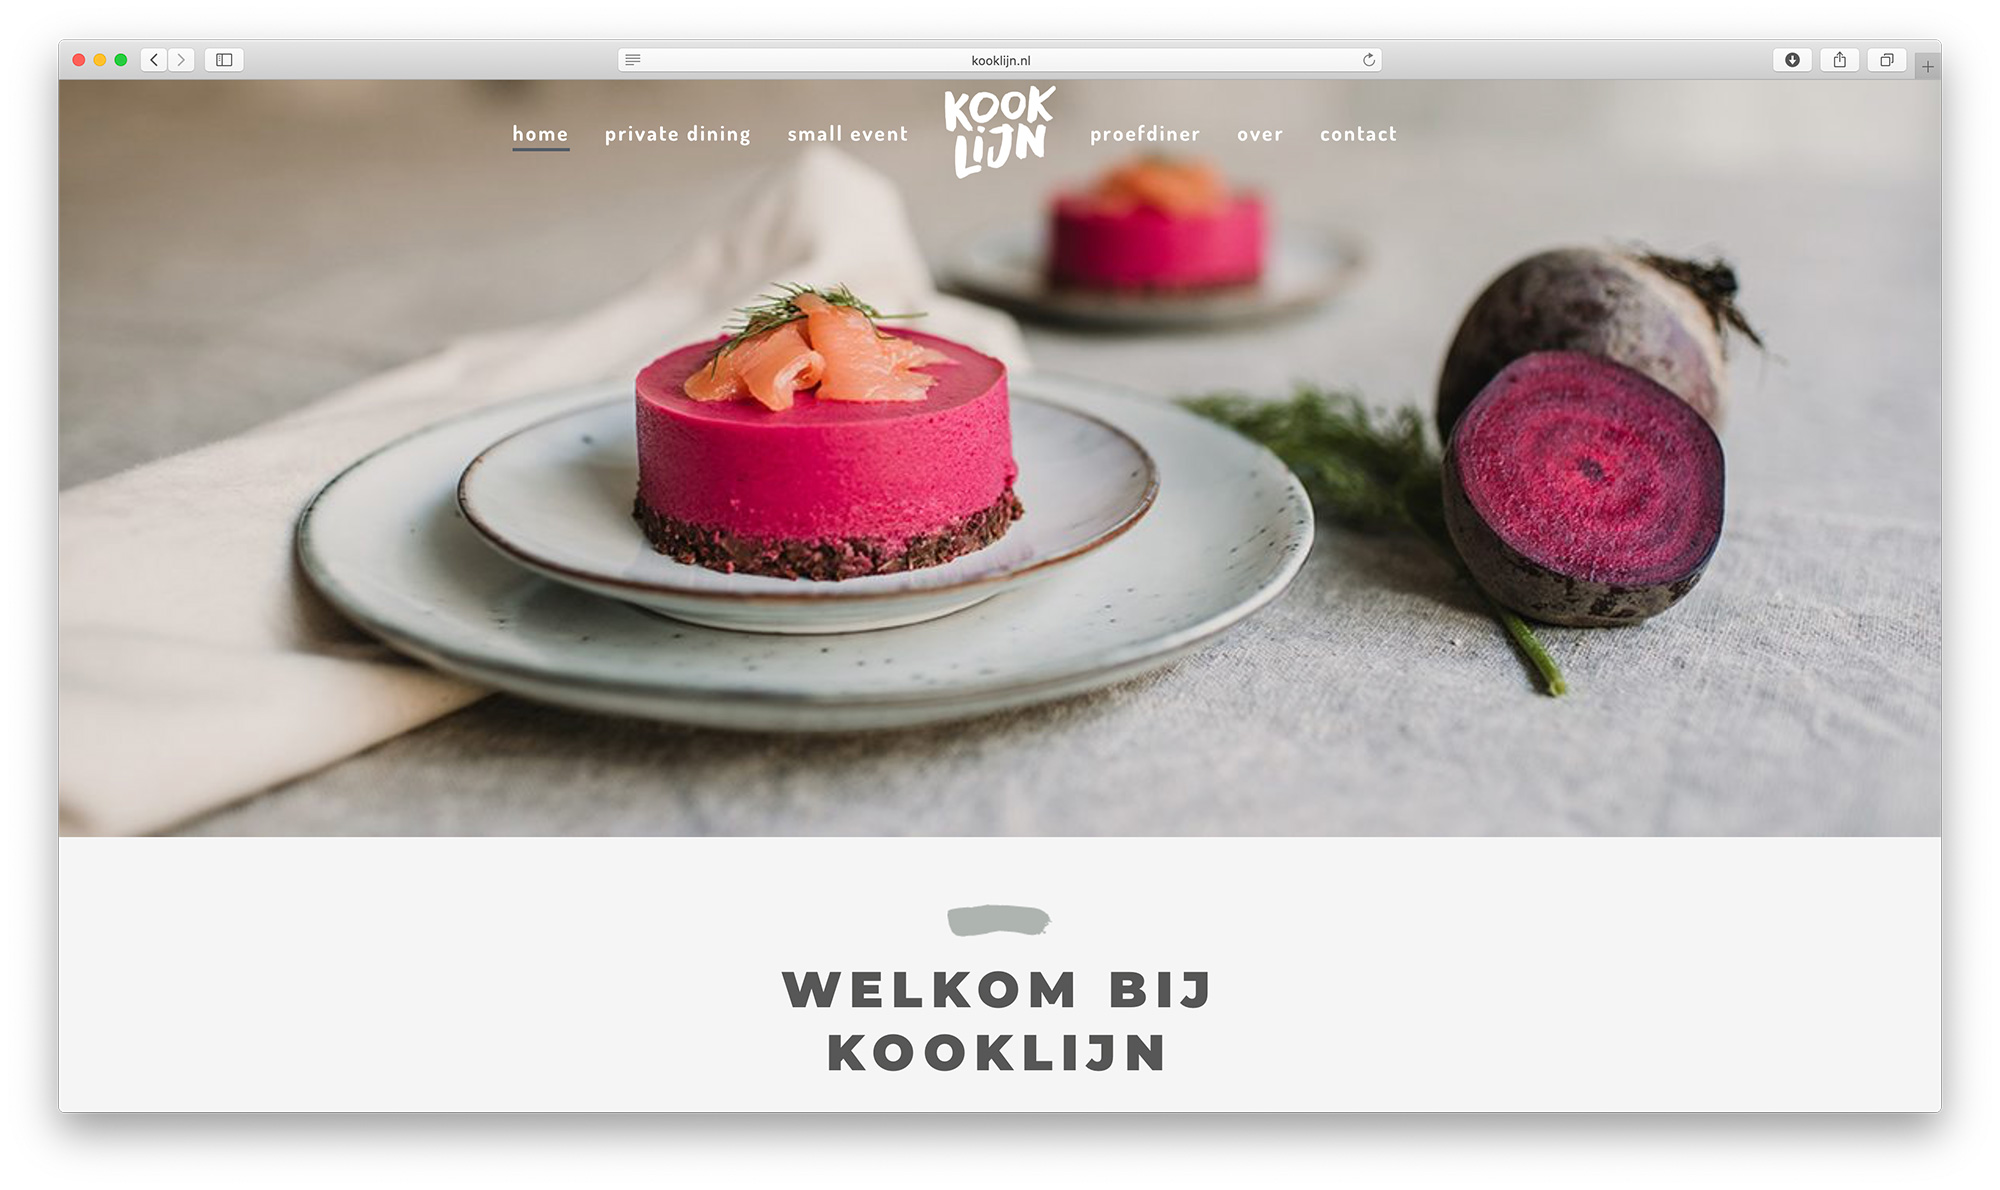 website_kooklijn1.jpg